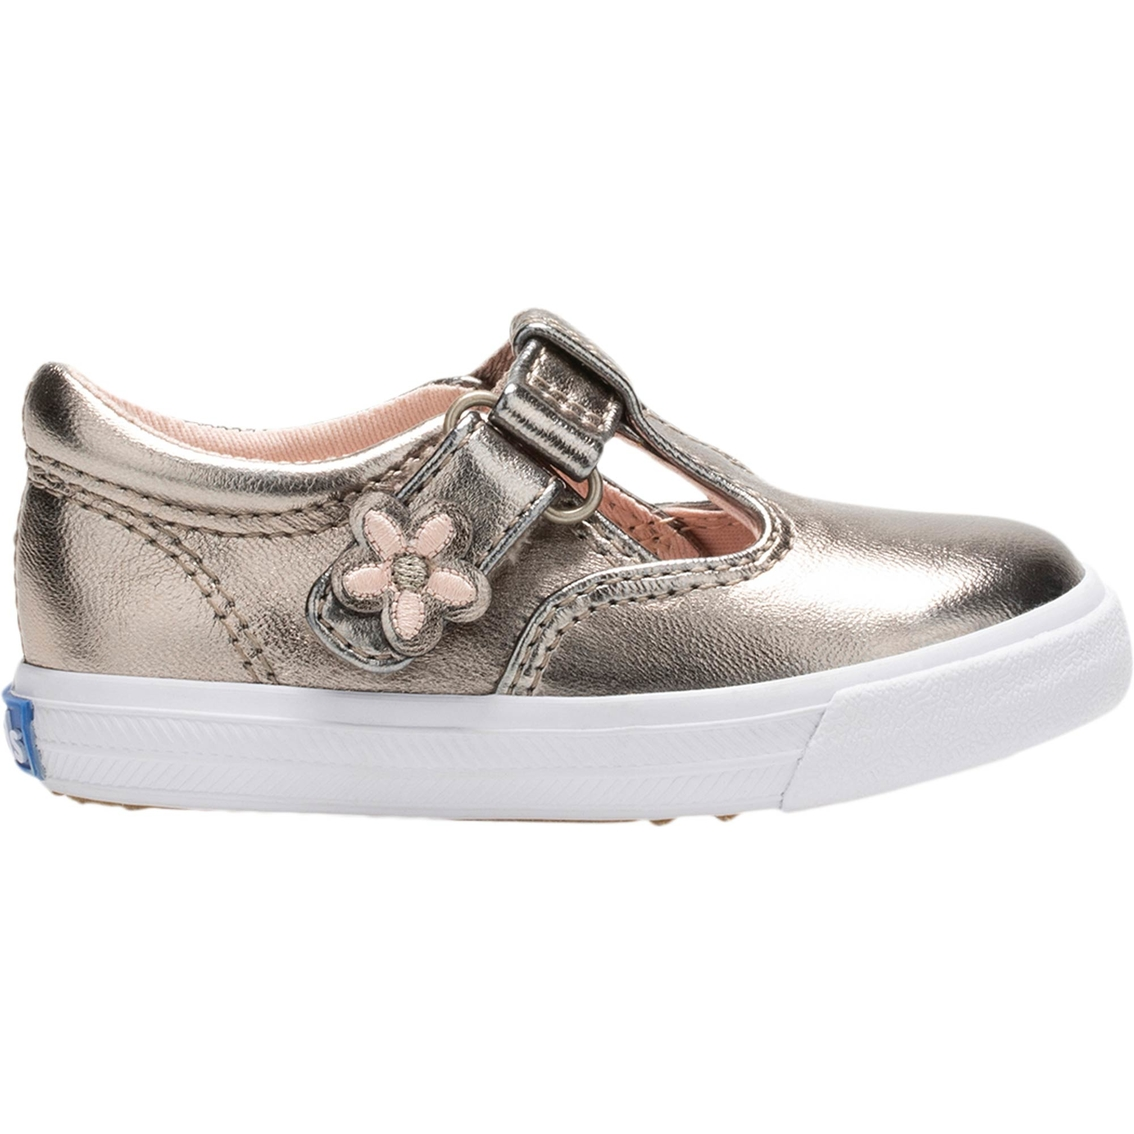 13708aeaf42a7 Keds Toddler Girls Daphne T-strap Sneakers | Casual | Shoes | Shop ...